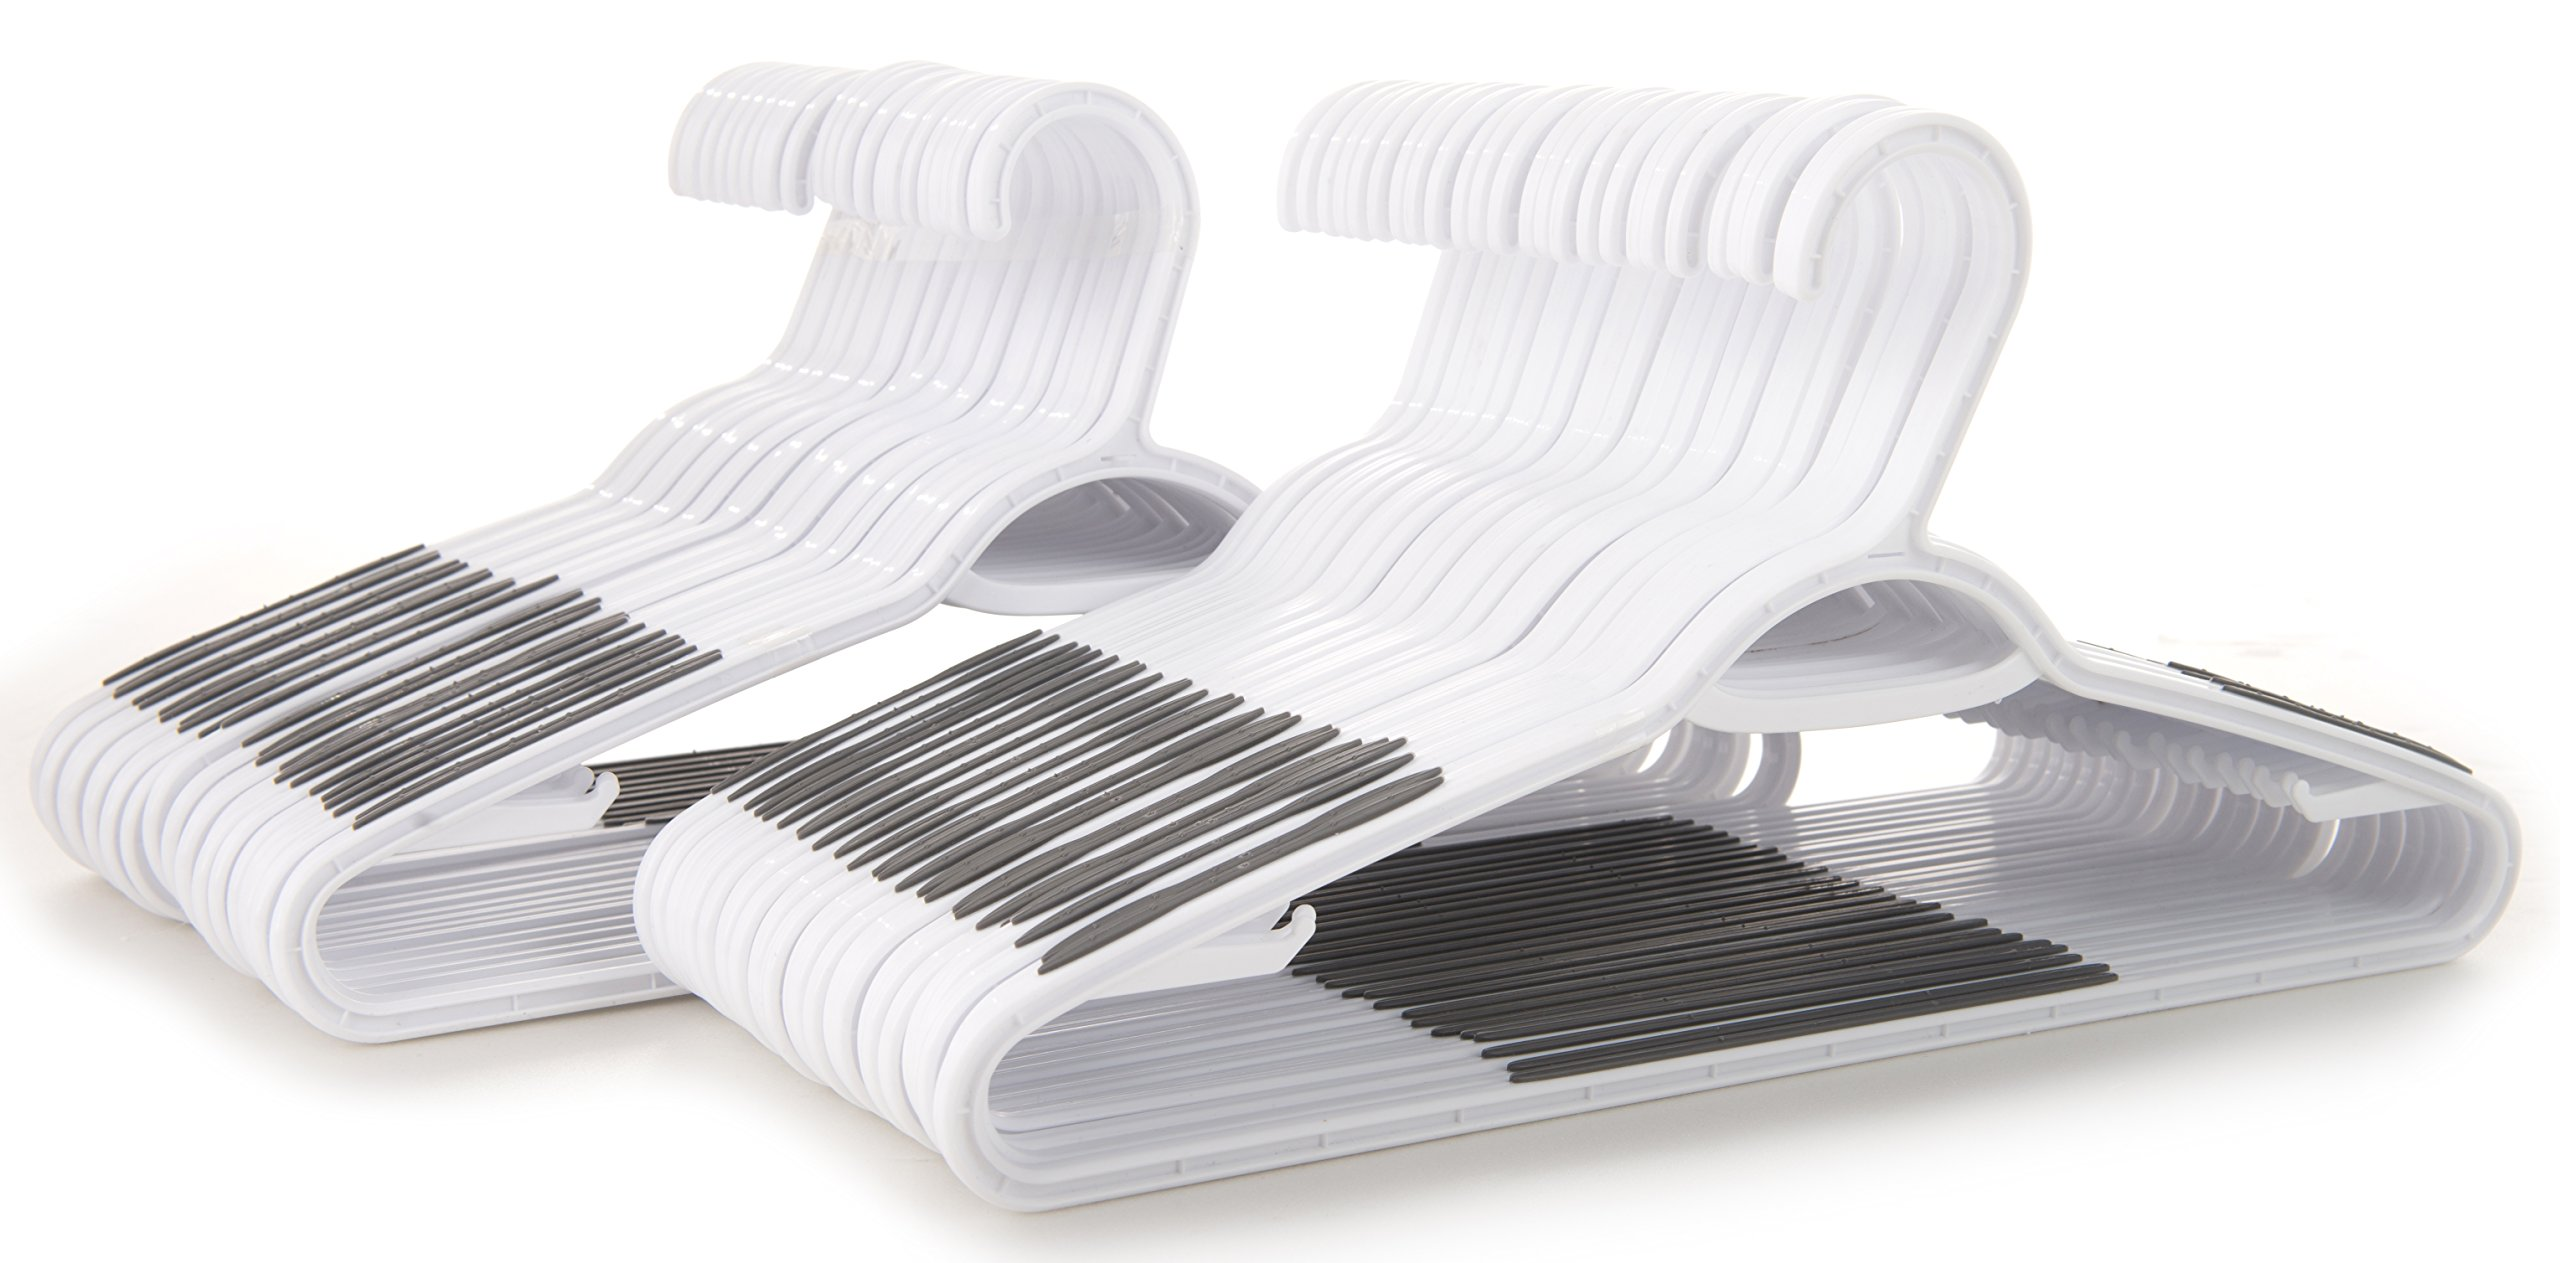 Popular Design Products 50 pc White Plastic Hangers with Built-in Grip Strip Non-Slip Pads - Perfect for Dresses, Blouses and Pants - Work Great for Shirts, Ties, Scarves and Sweaters